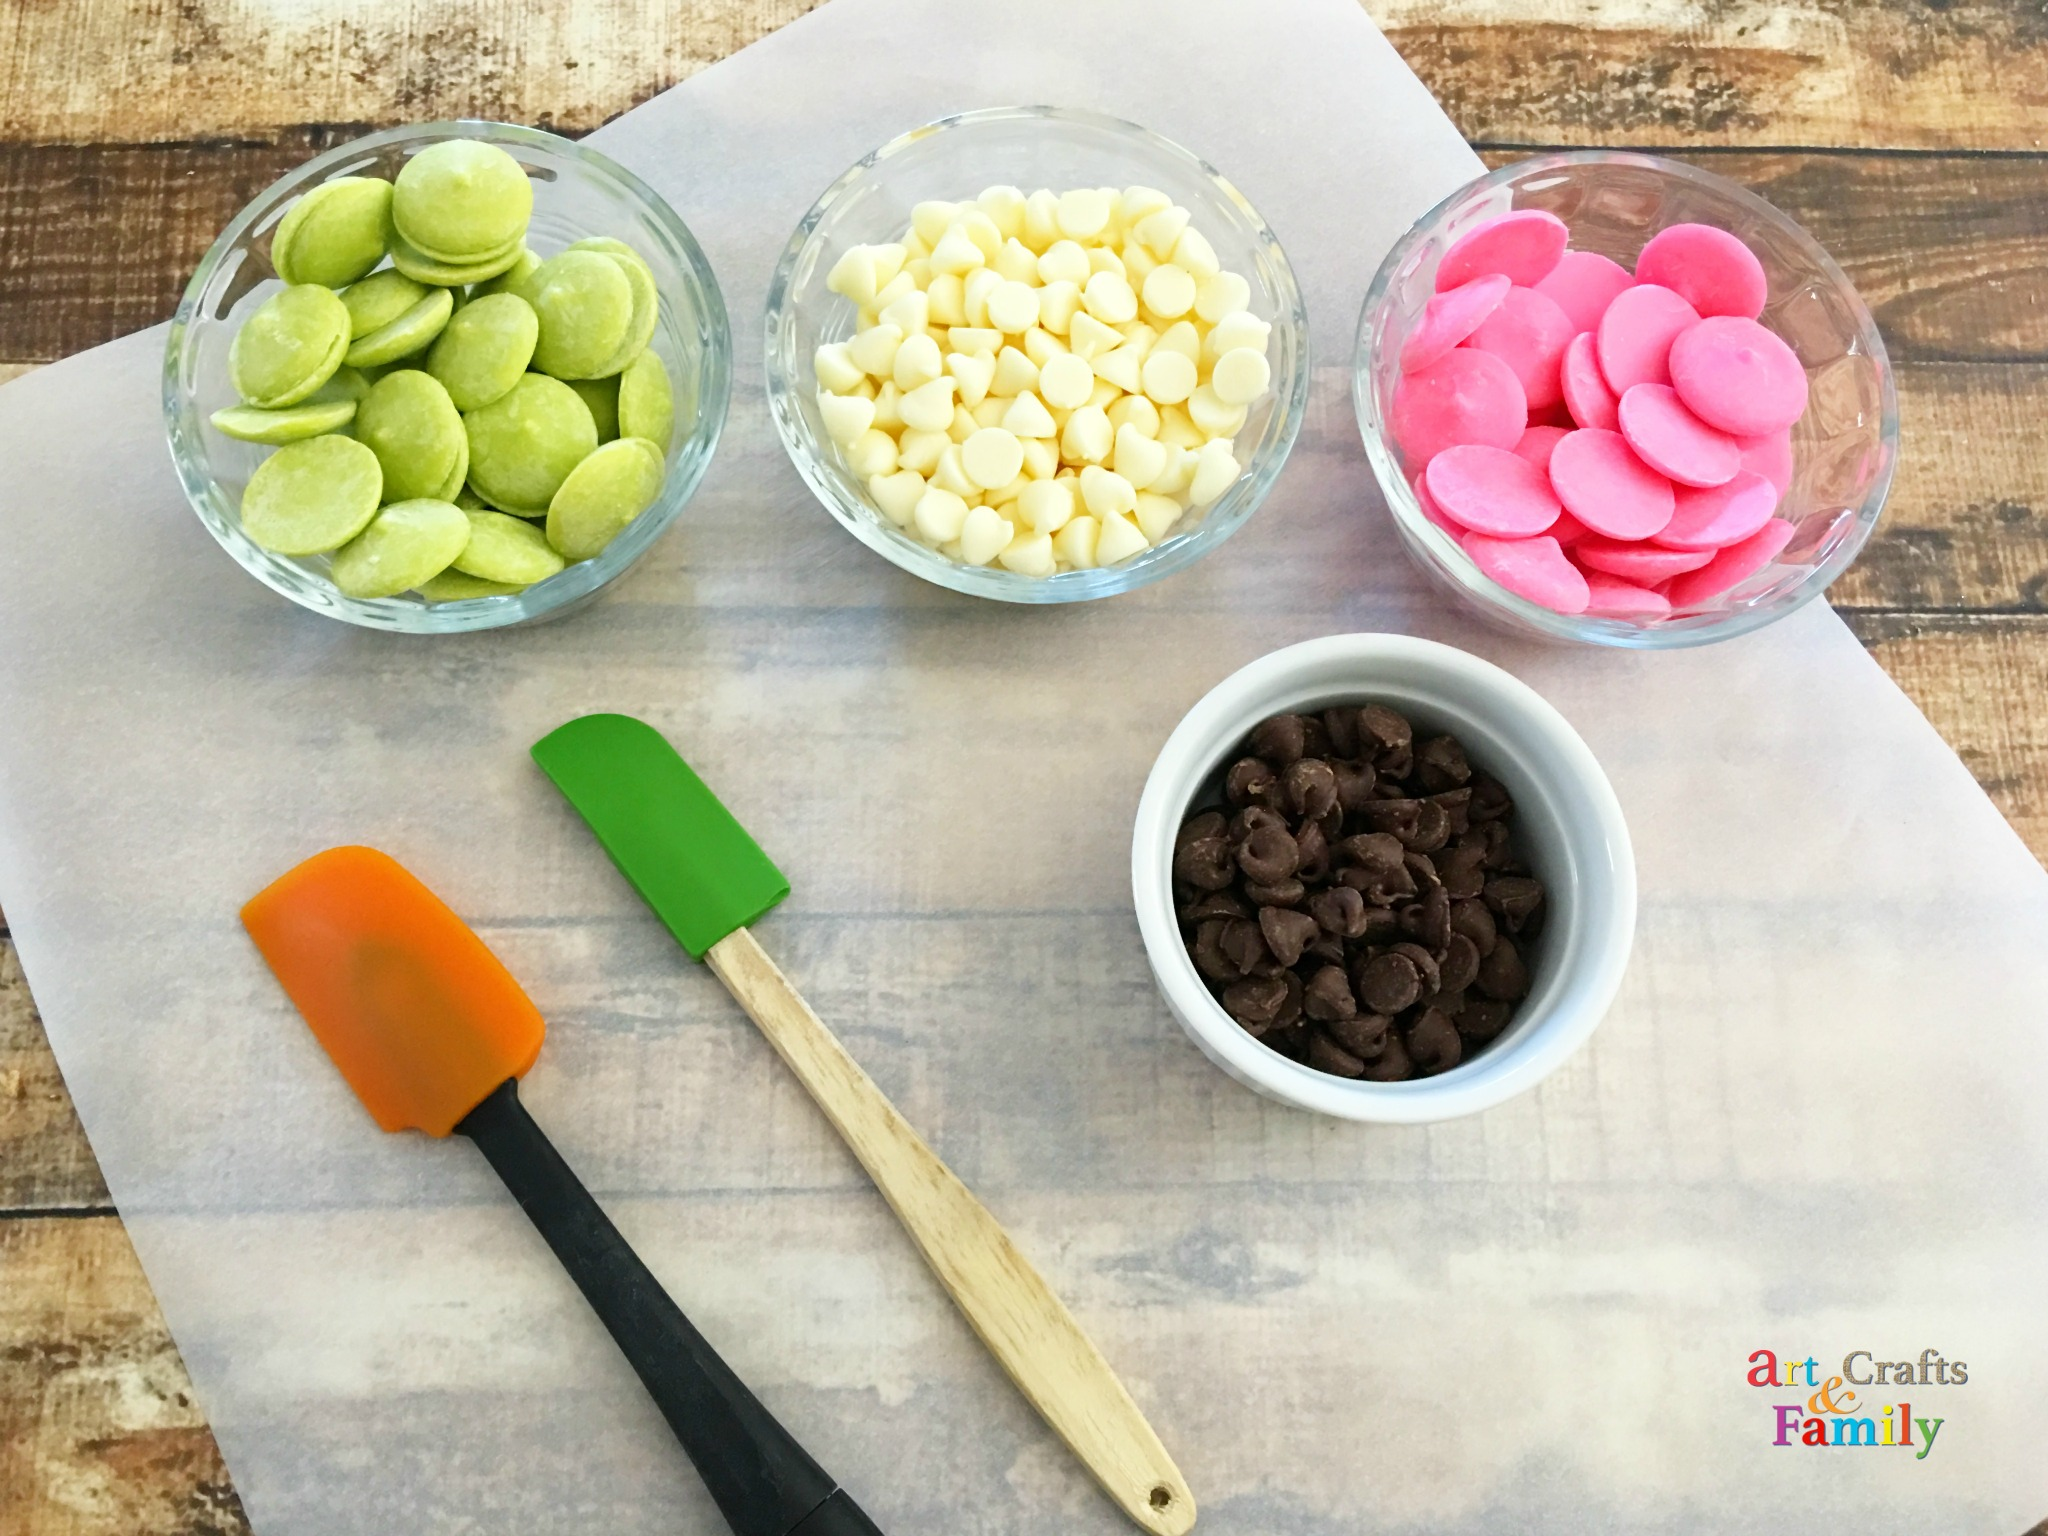 Ingredients for adorable and yummy watermelon bark candy.